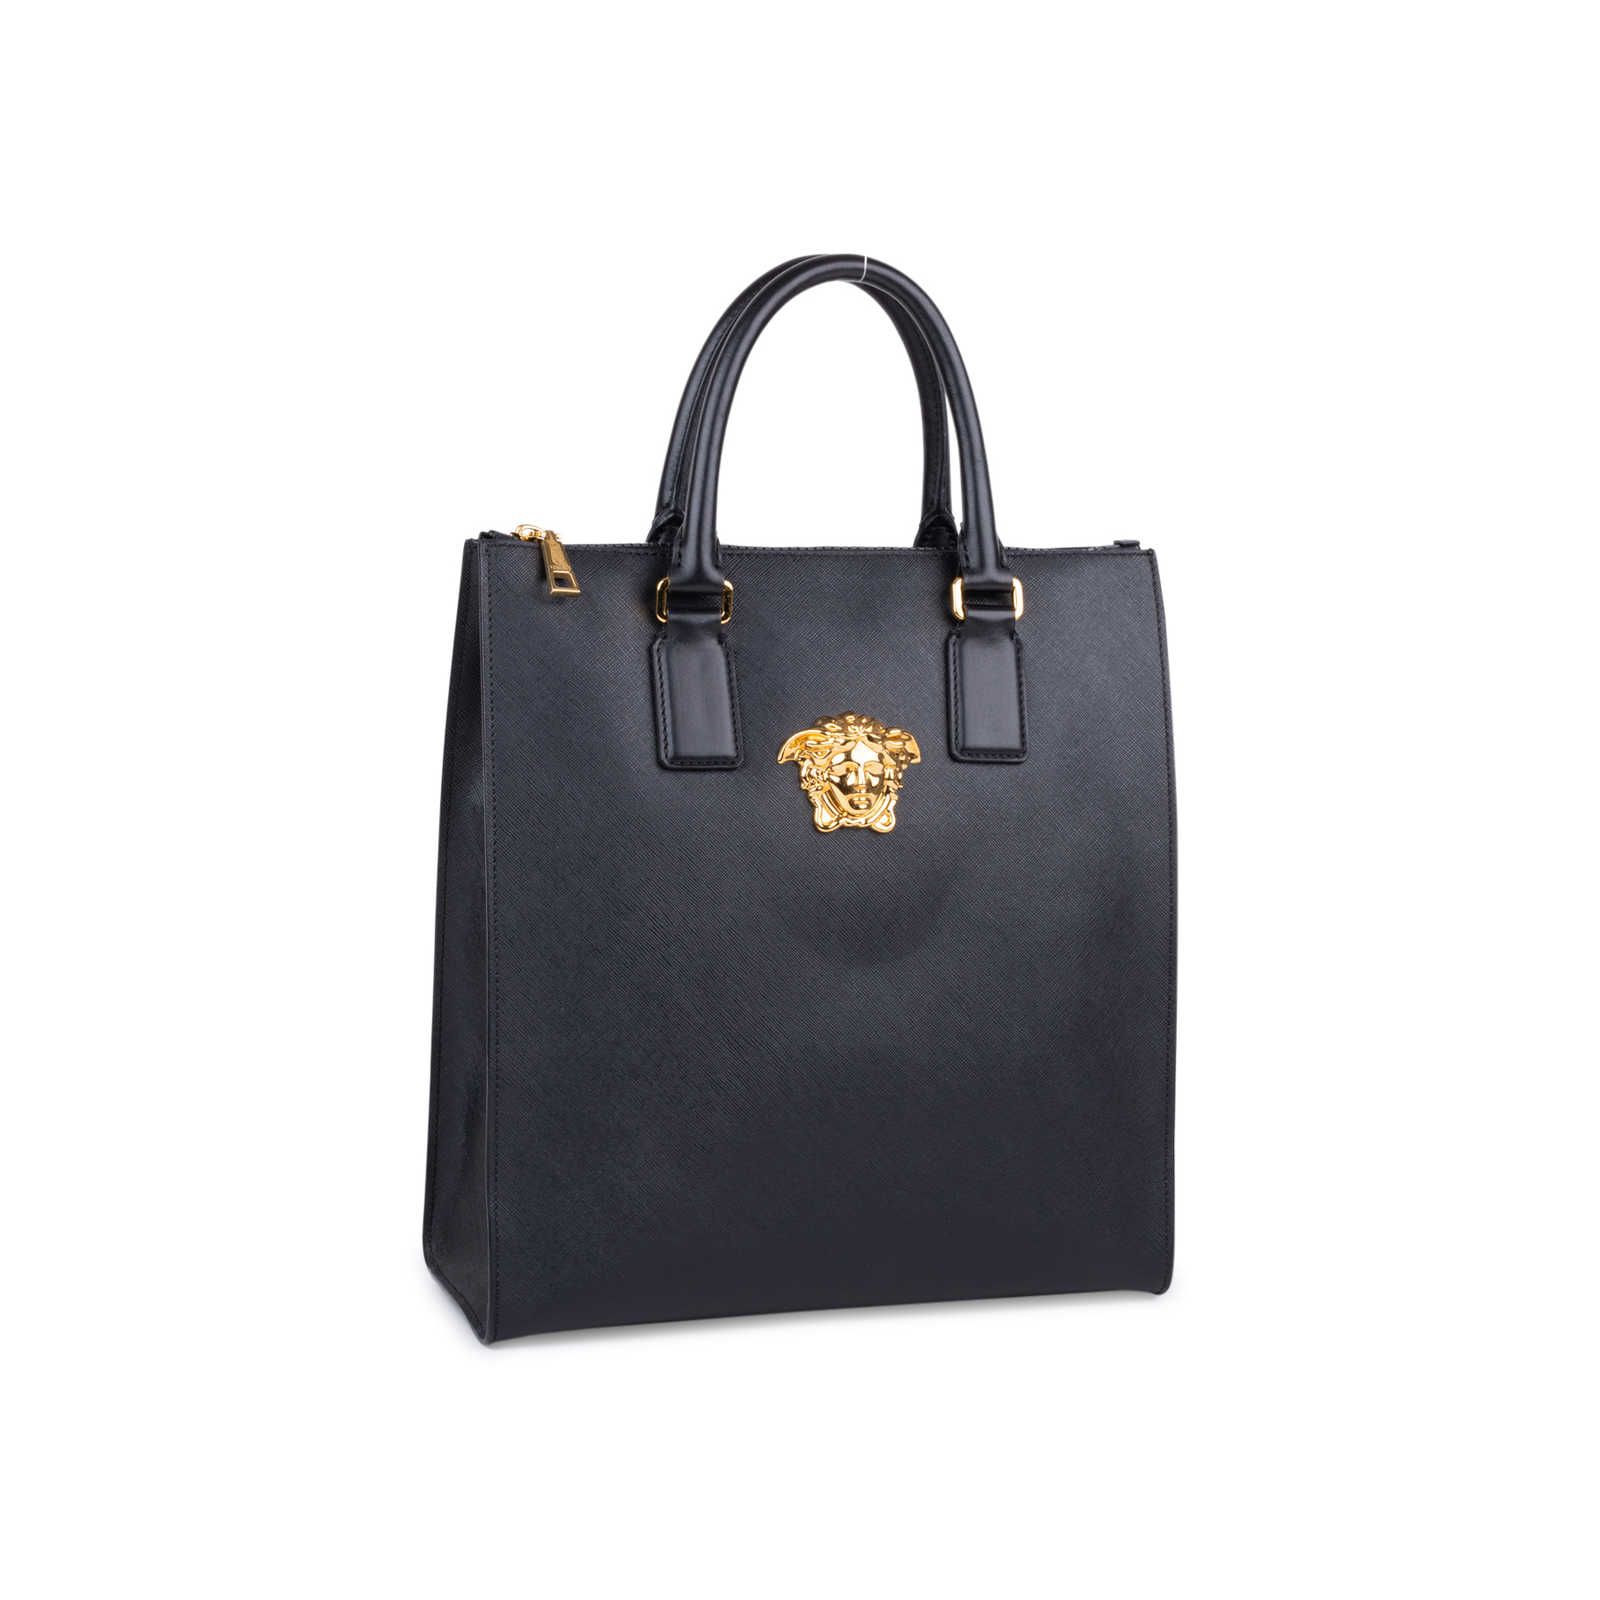 22473a0dea ... Authentic Second Hand Versace Palazzo Medusa Tote (PSS-592-00002) -  Thumbnail ...